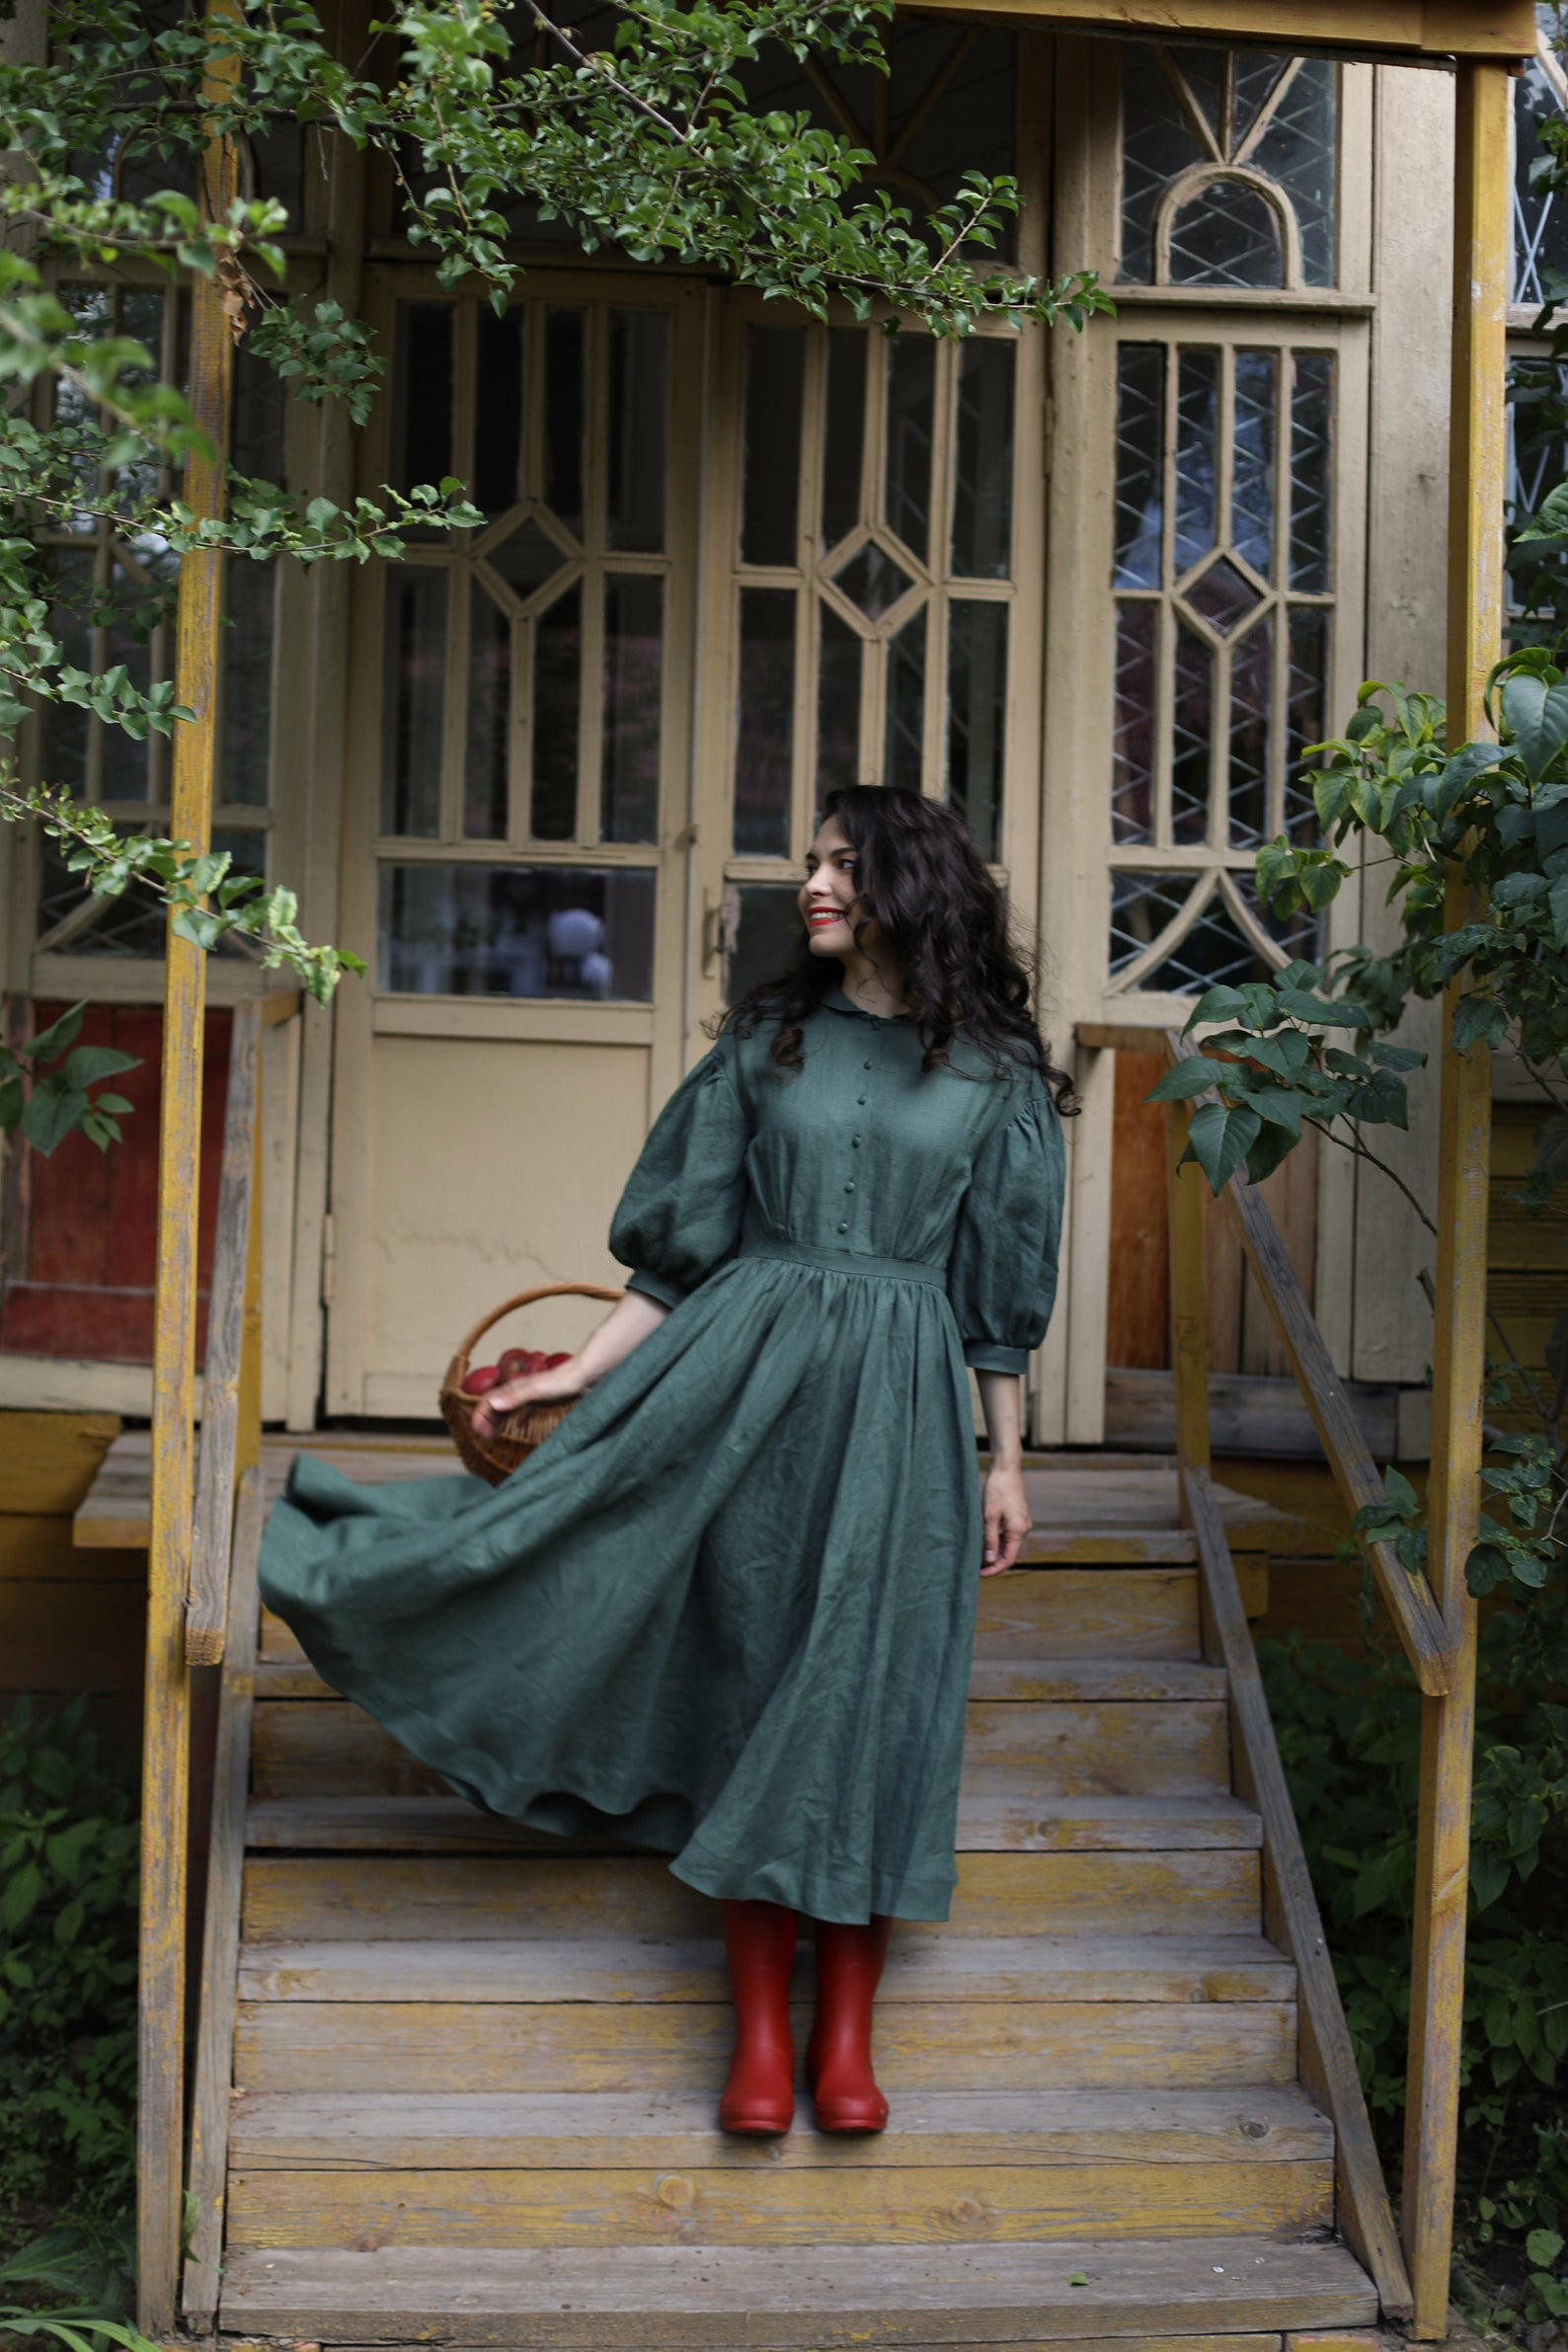 A woman standing on steps in a dark green linen dress with puffy sleeves, buttons down the front, and dark red rainboots.